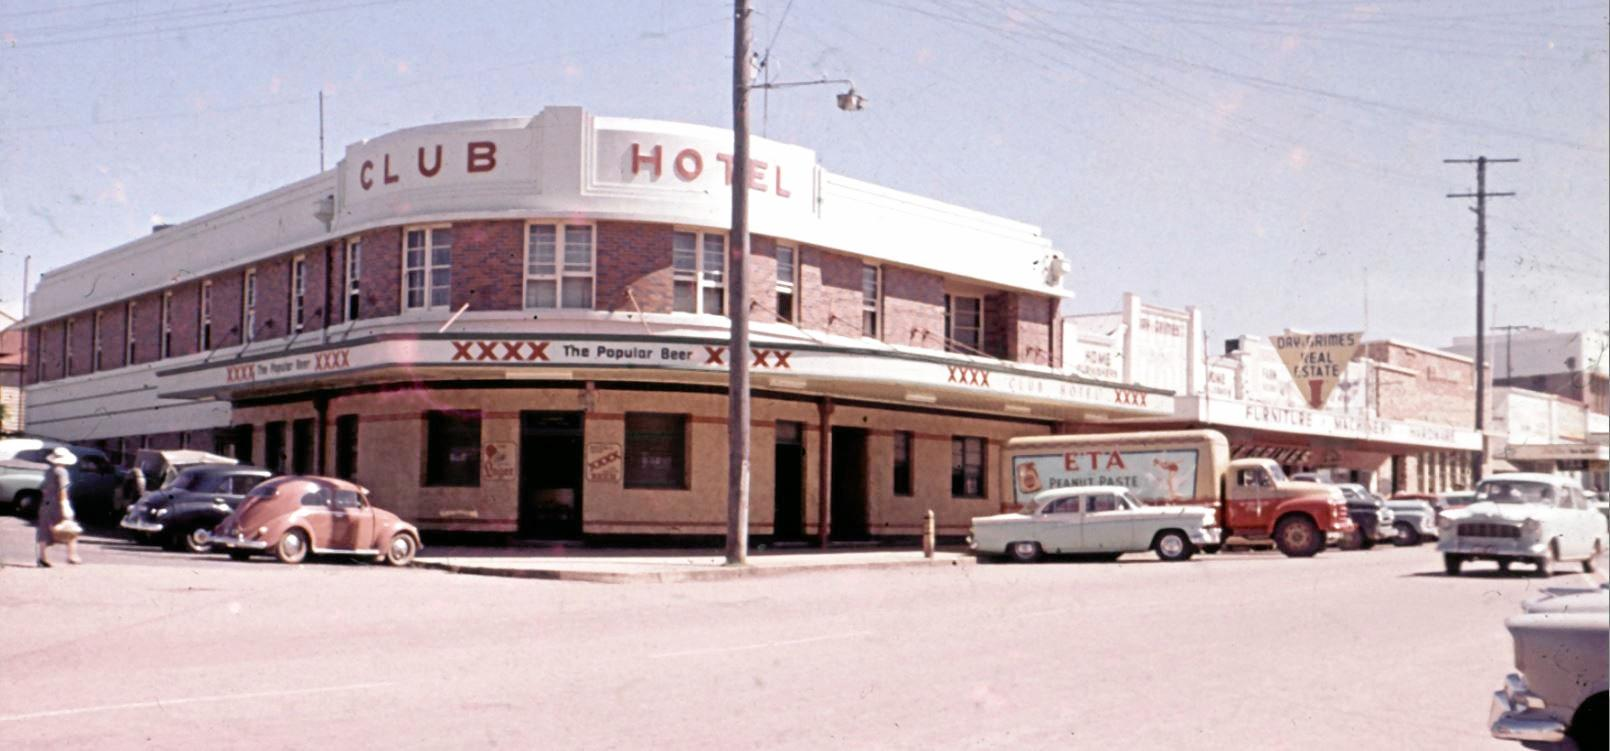 The Club Hotel in the 1960s.